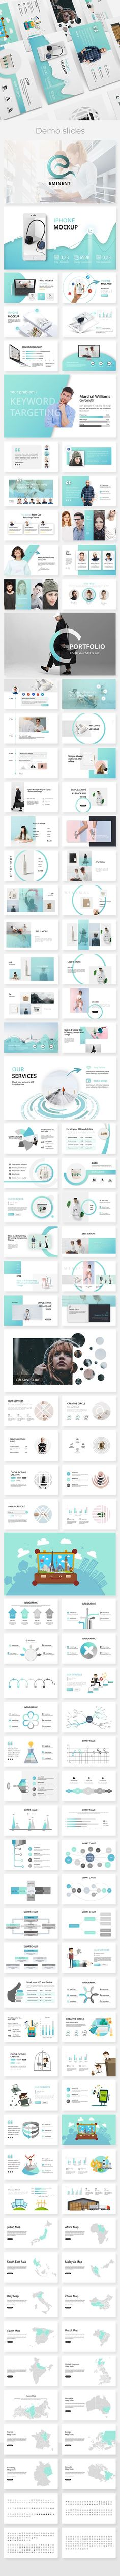 Eminent Creative Keynote Template — KEY #business template #professional • Download ➝ https://graphicriver.net/item/eminent-creative-keynote-template/21556412?ref=pxcr